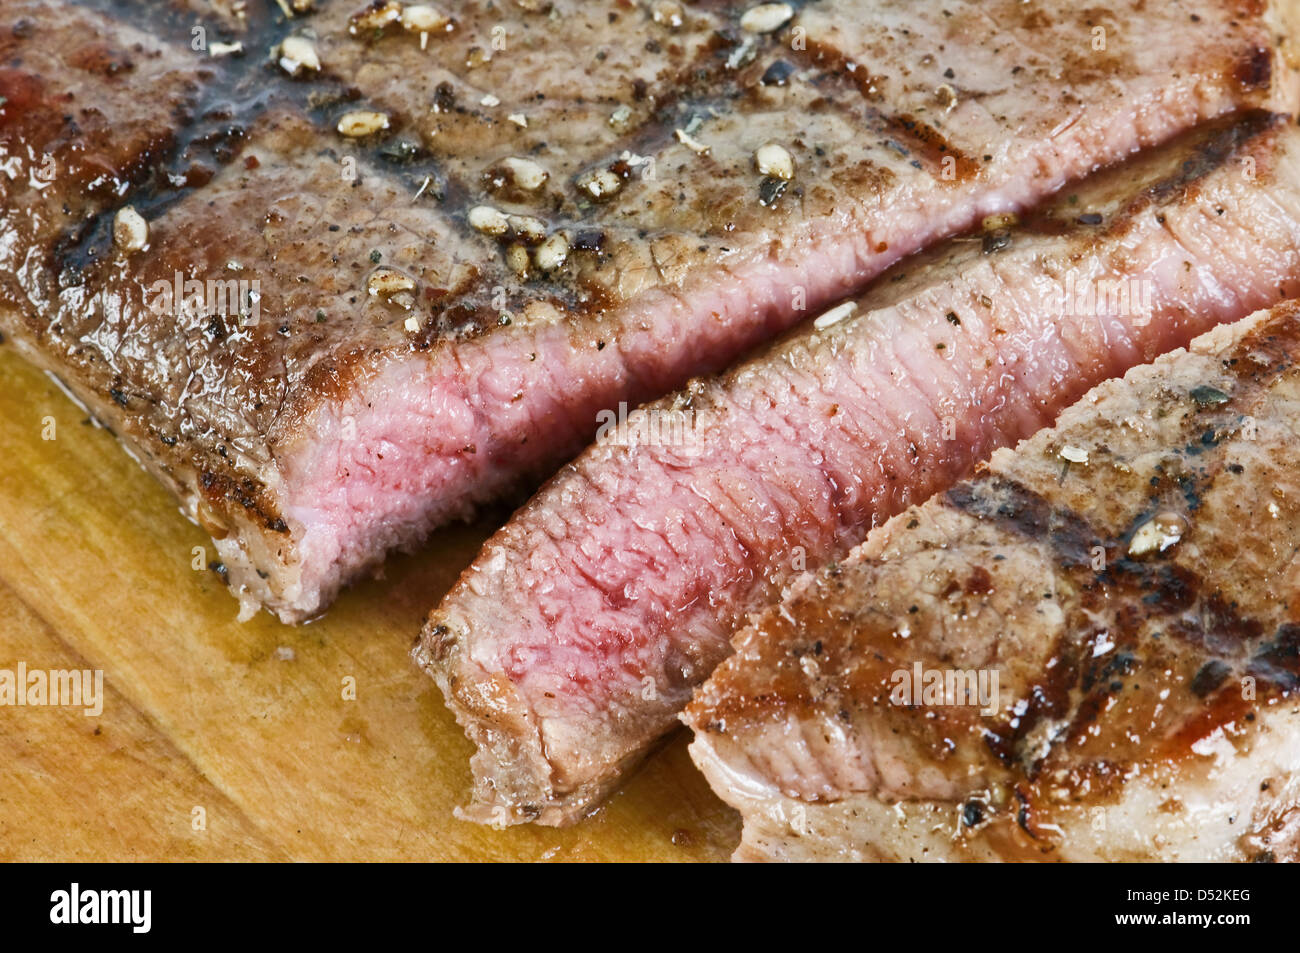 juicy striped steak on wood table - Stock Image